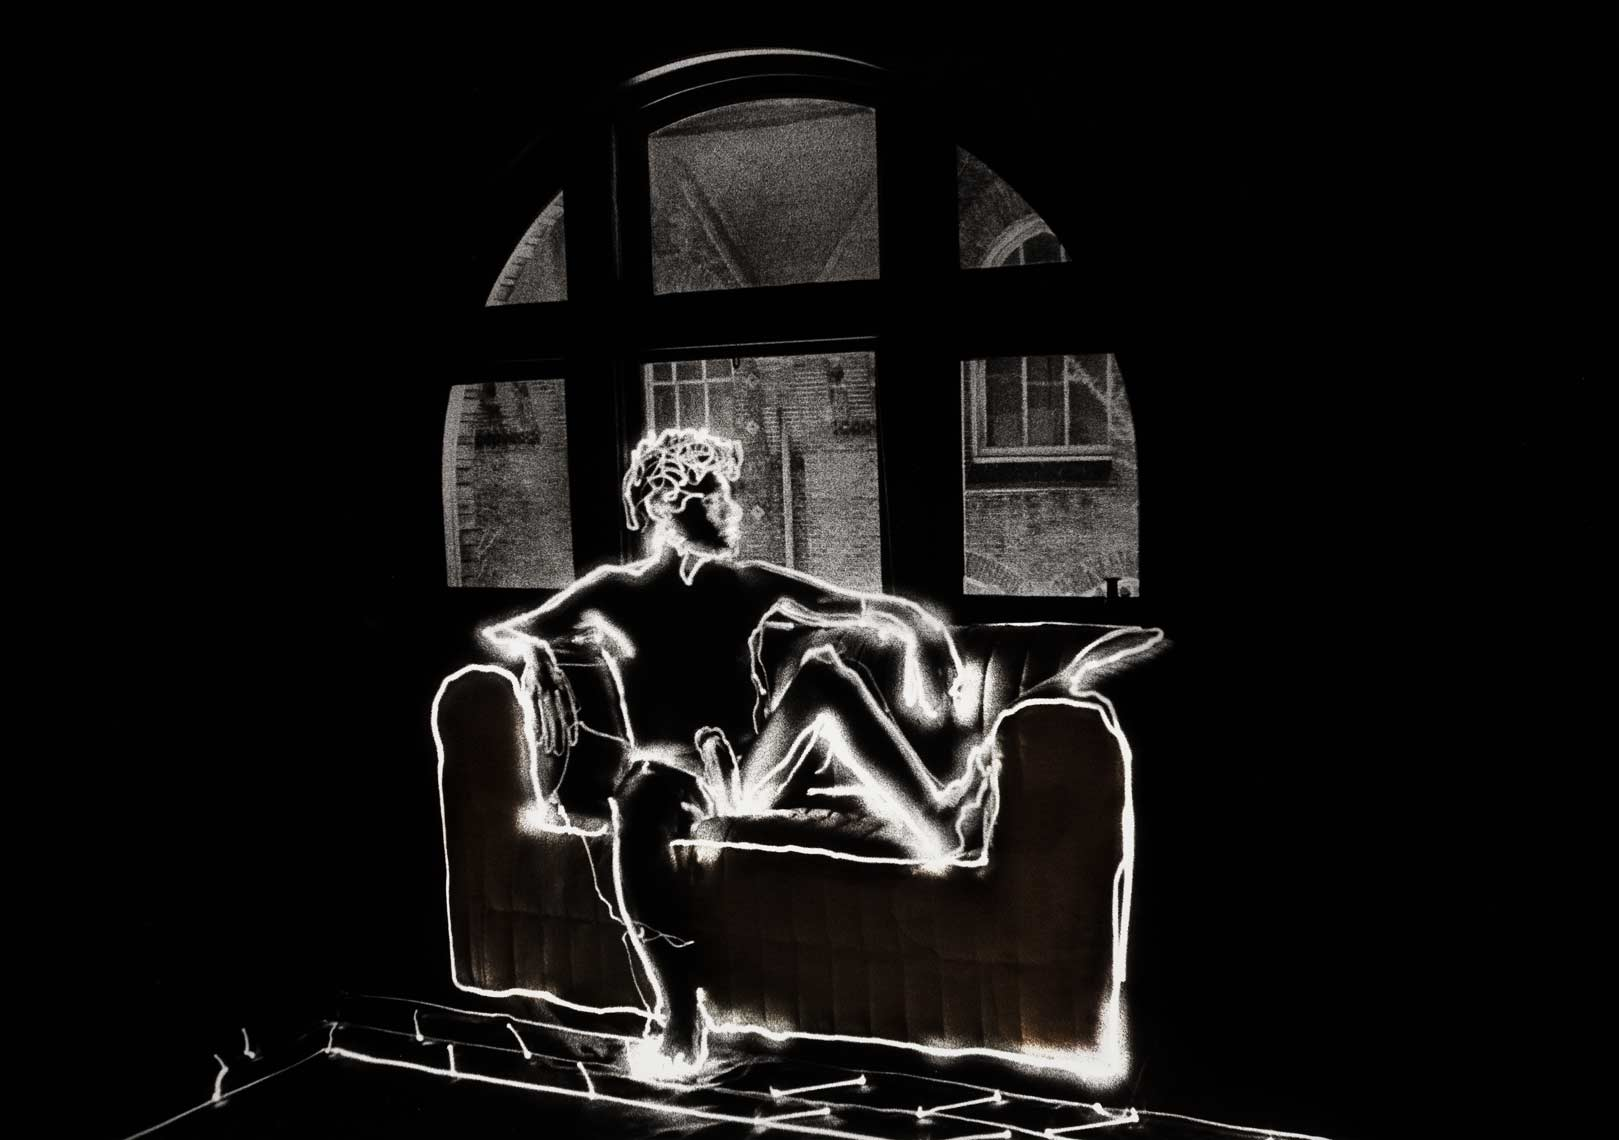 David Lebe; Cool Heat 1981, light drawing, black and white photograph